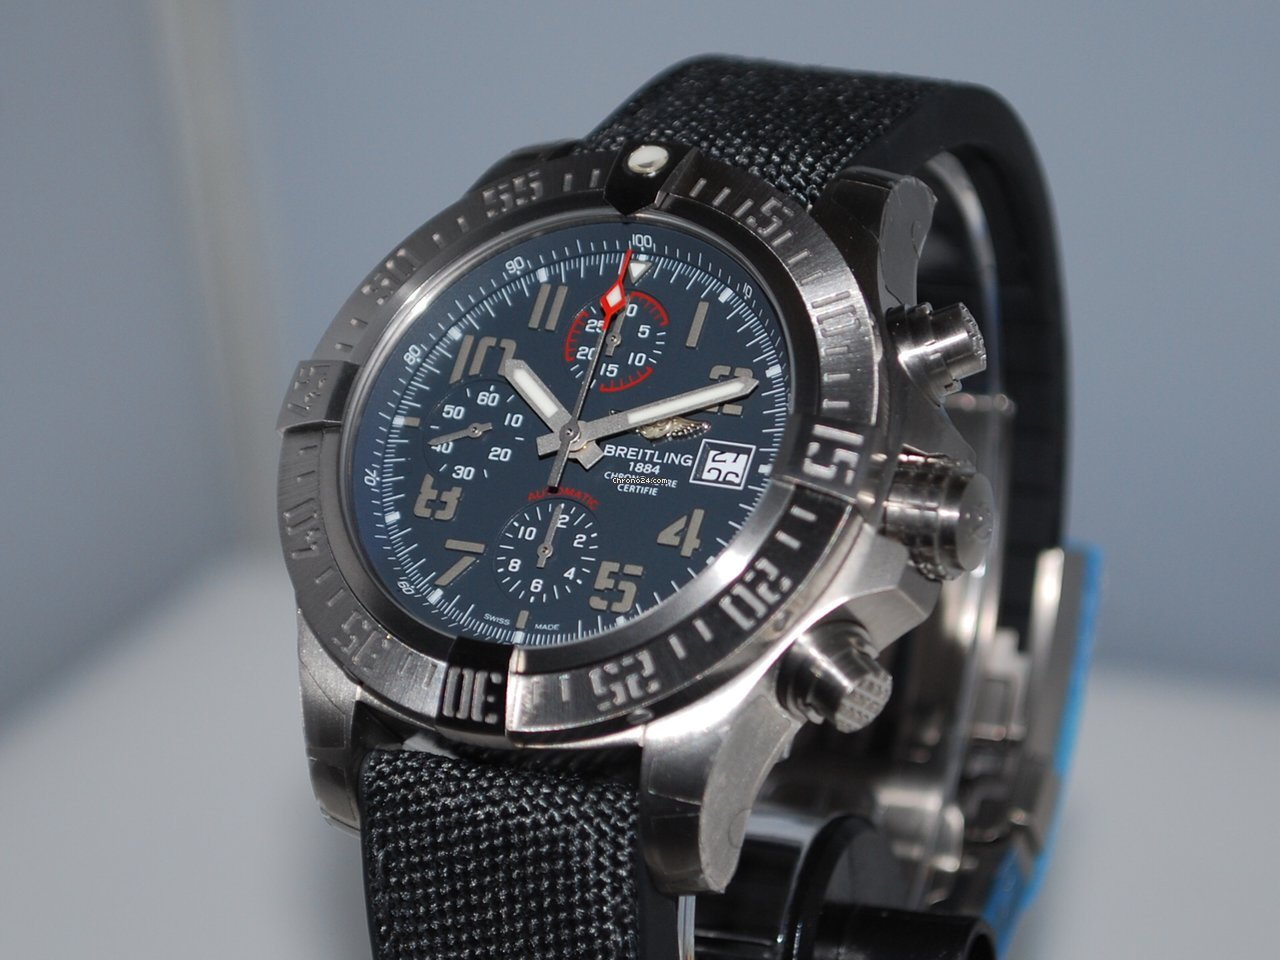 breitling avenger bandit for  5 645 for sale from a trusted seller on chrono24 seiko manual winding 9s64 seiko manual winding 9s64